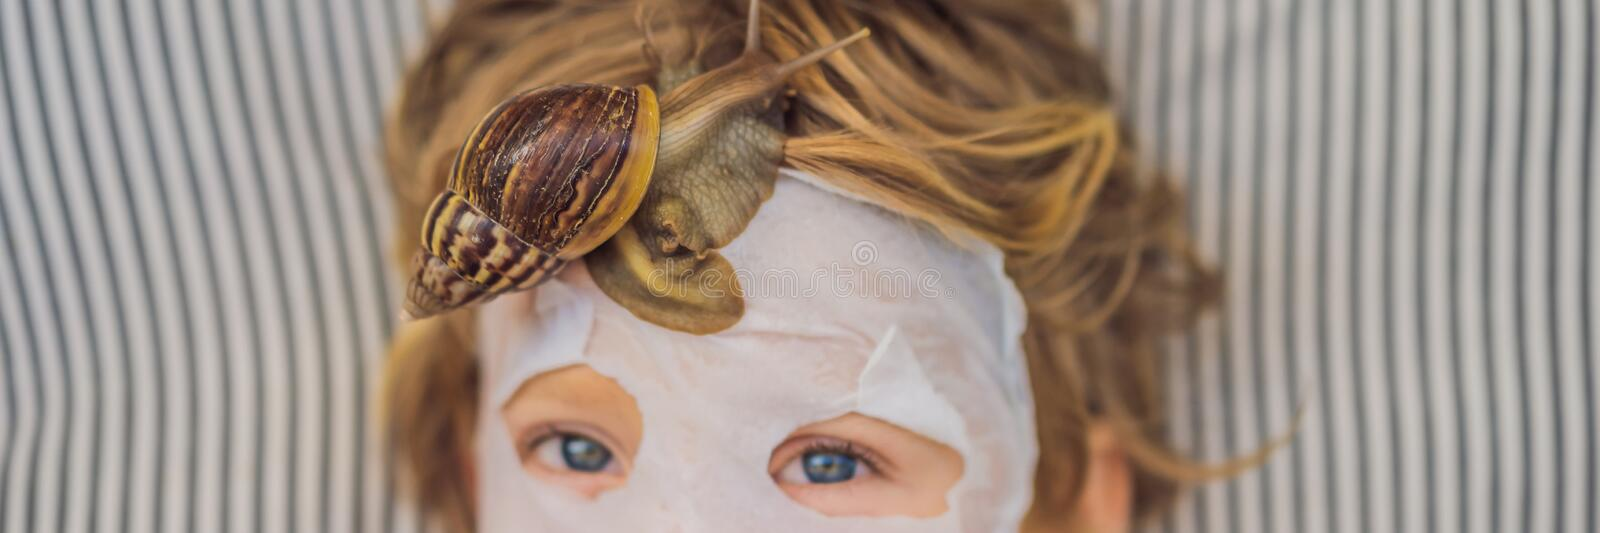 Strongly younger from the mask with snail mucus. A child in a mask for the face with a snail. Snail crawling on a face. Mask. SPA for all. BANNER, LONG FORMAT royalty free stock photography